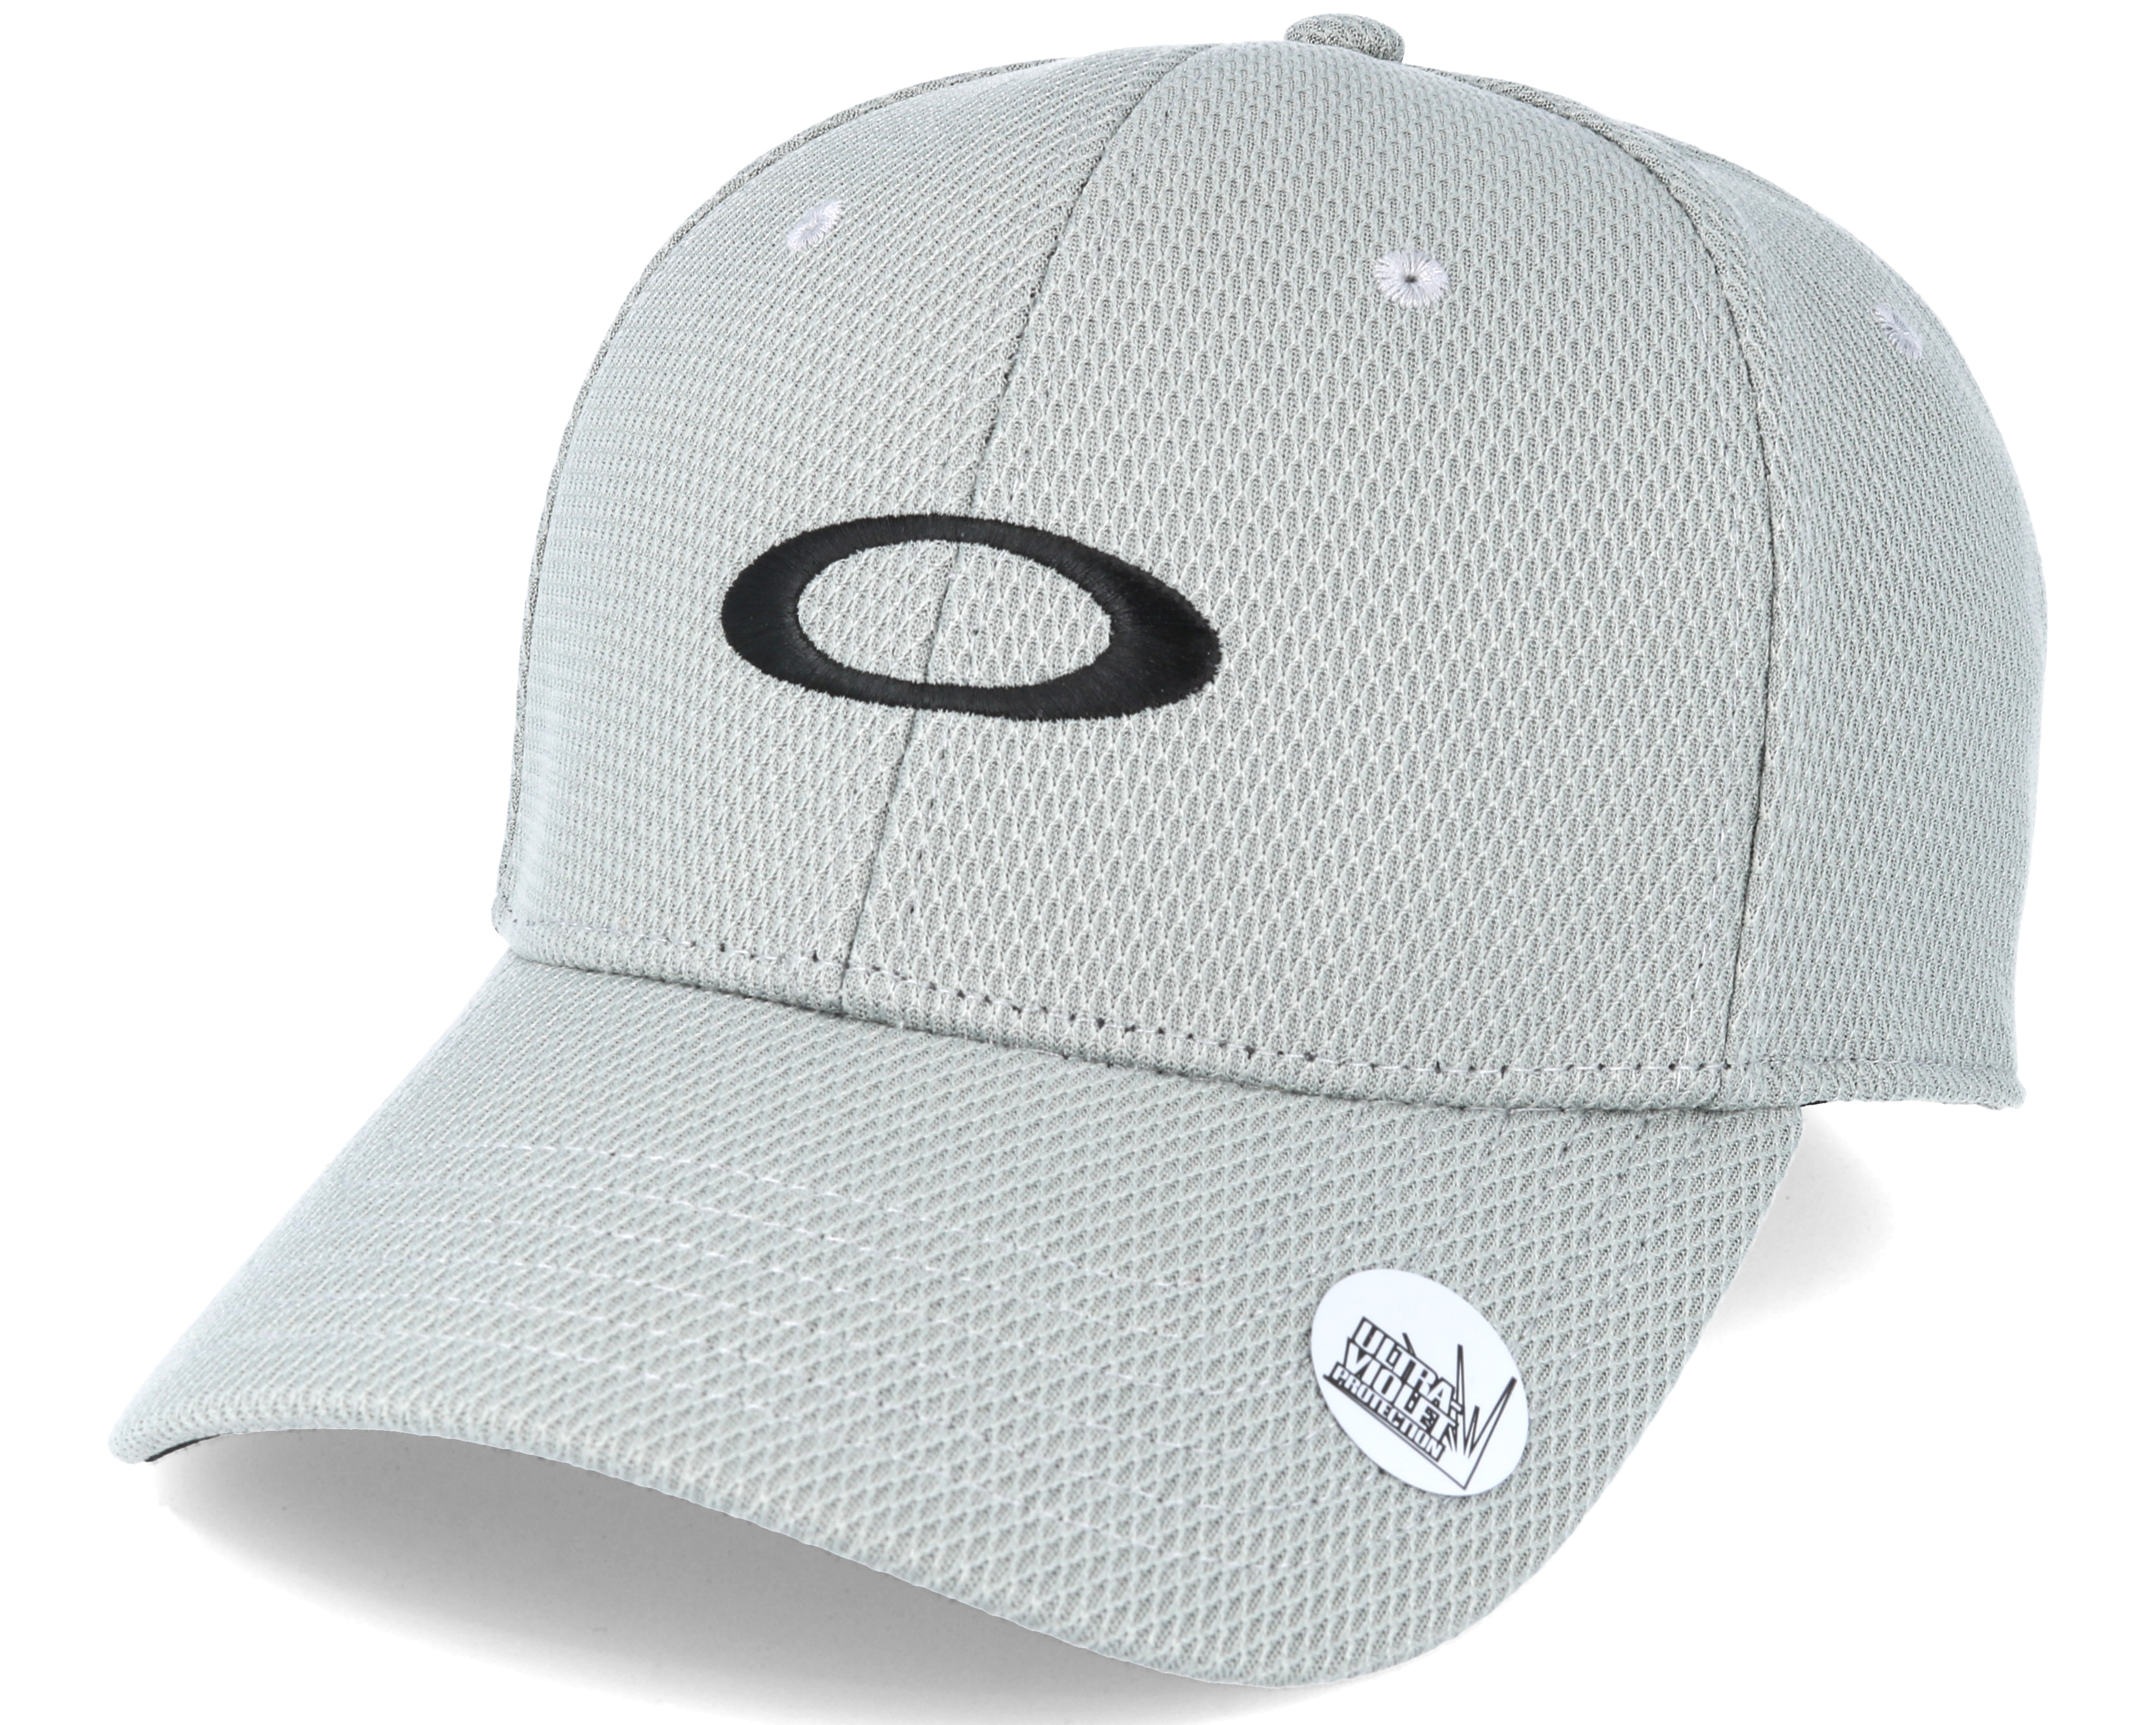 30a8e4beaf4 Golf Ellipse Grey Adjustable - Oakley - casquette